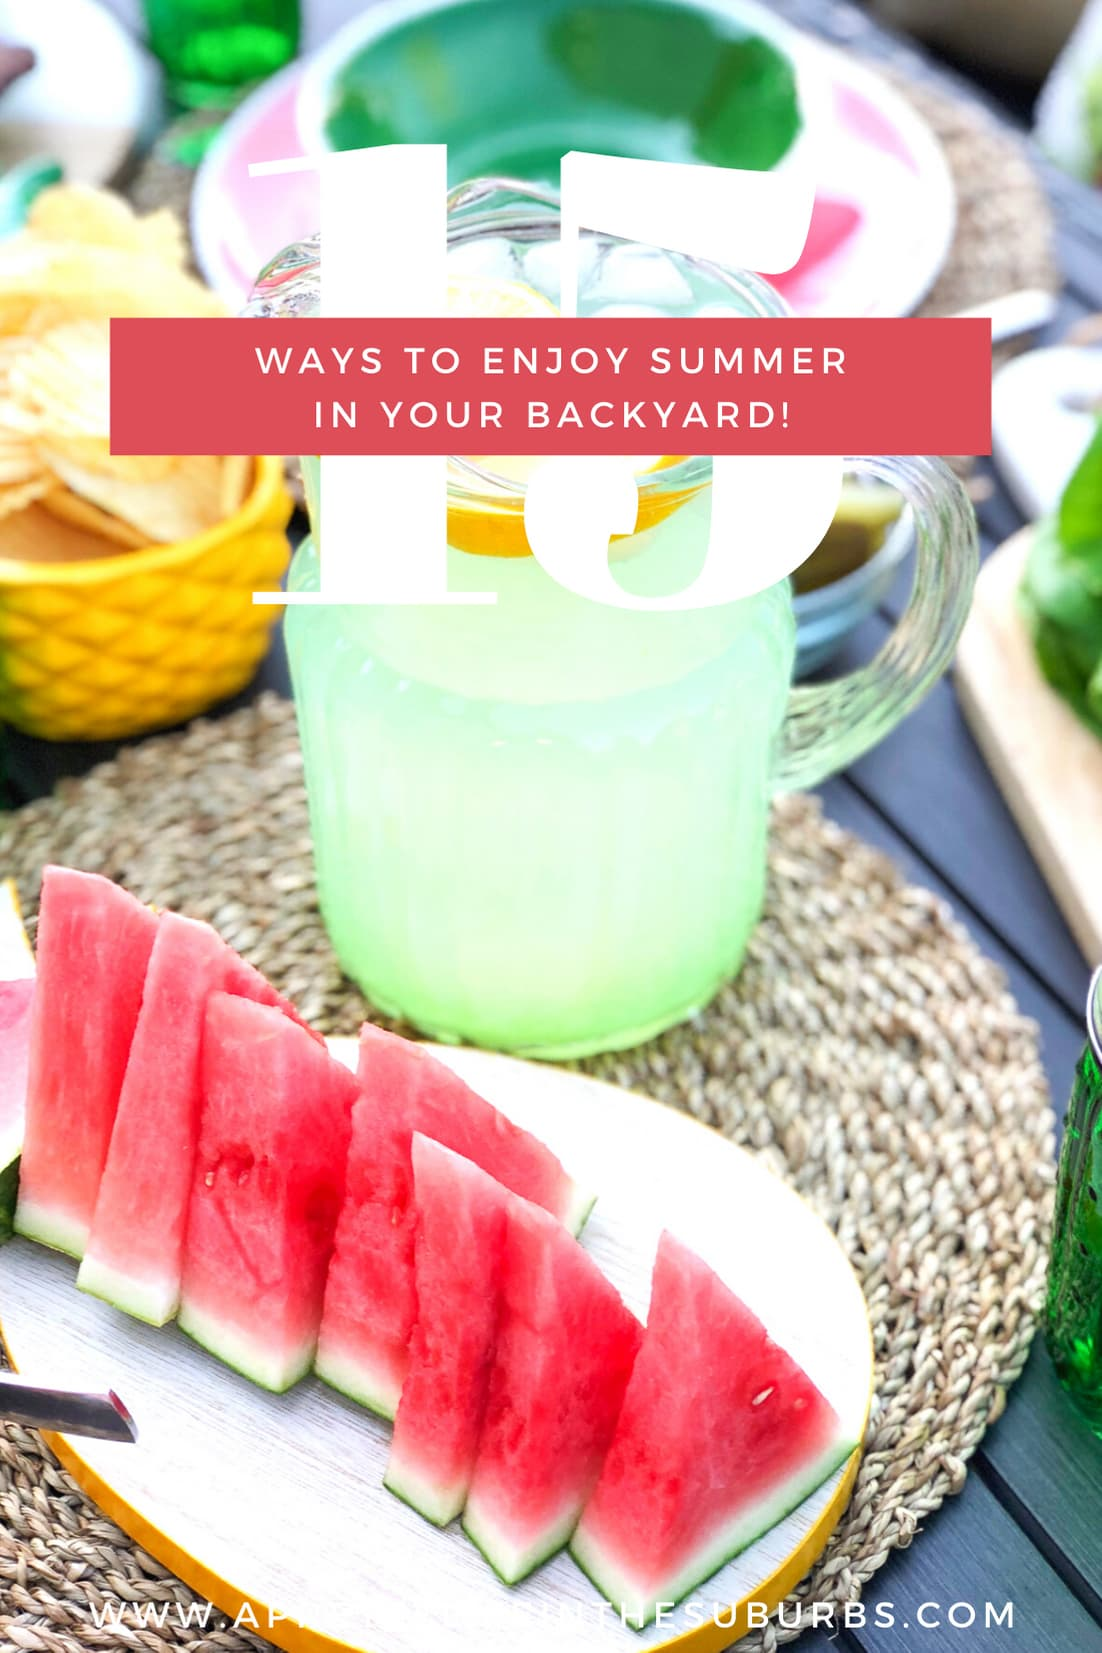 15 Ways to Enjoy your Summer in your Backyard!